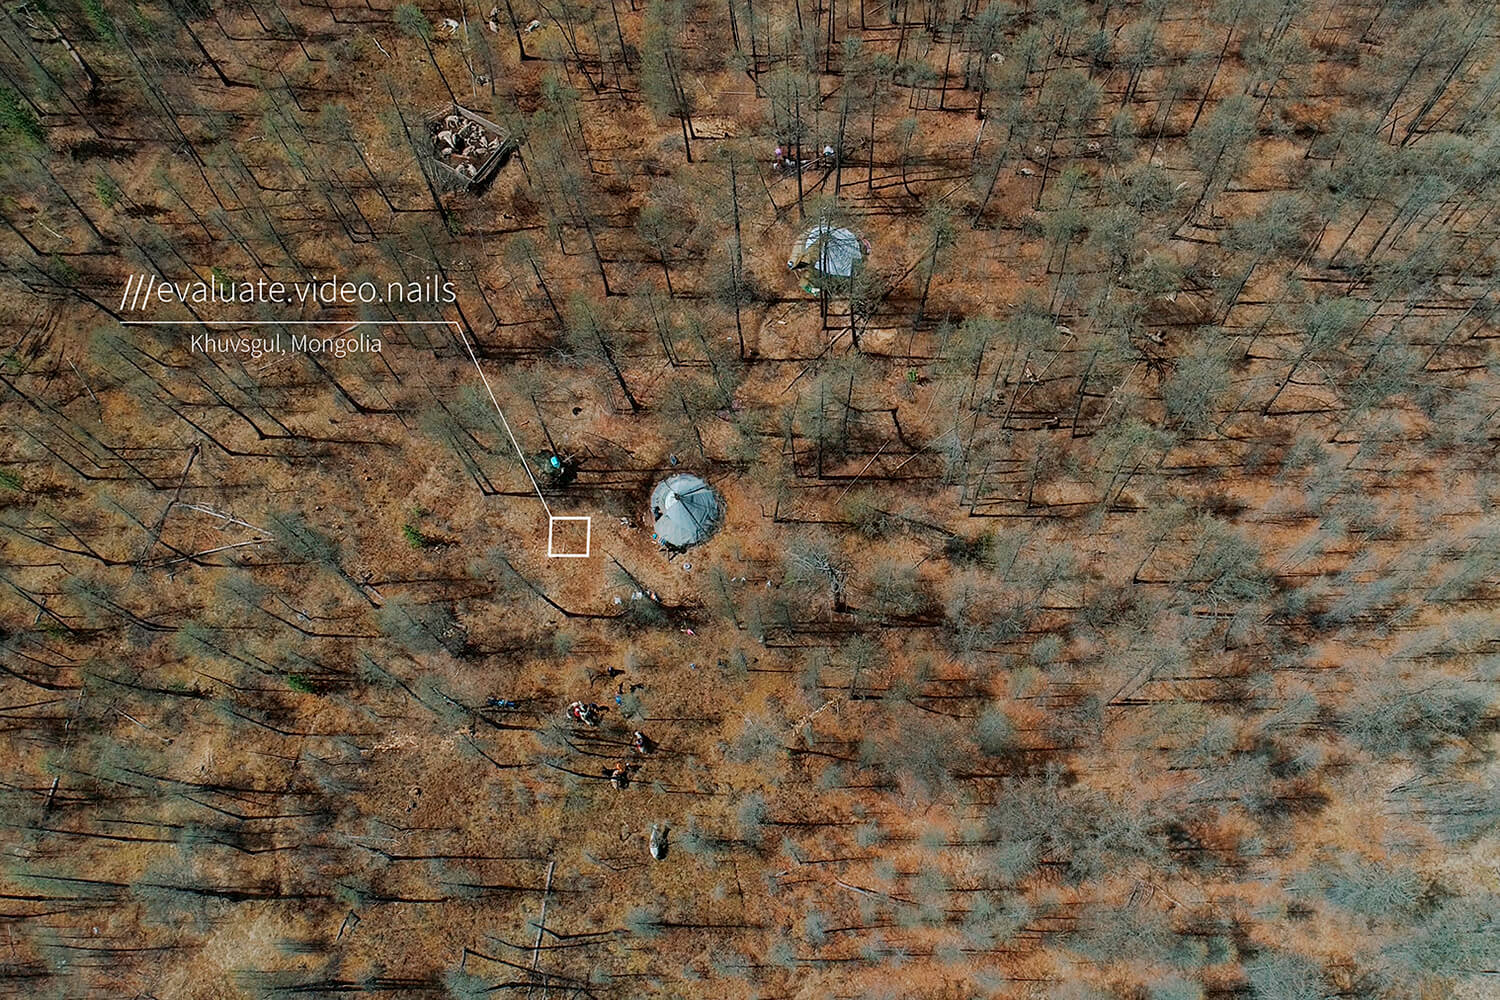 mongolian campsite in middle of forest with no pathway at 3 word address evaluate.video.nails